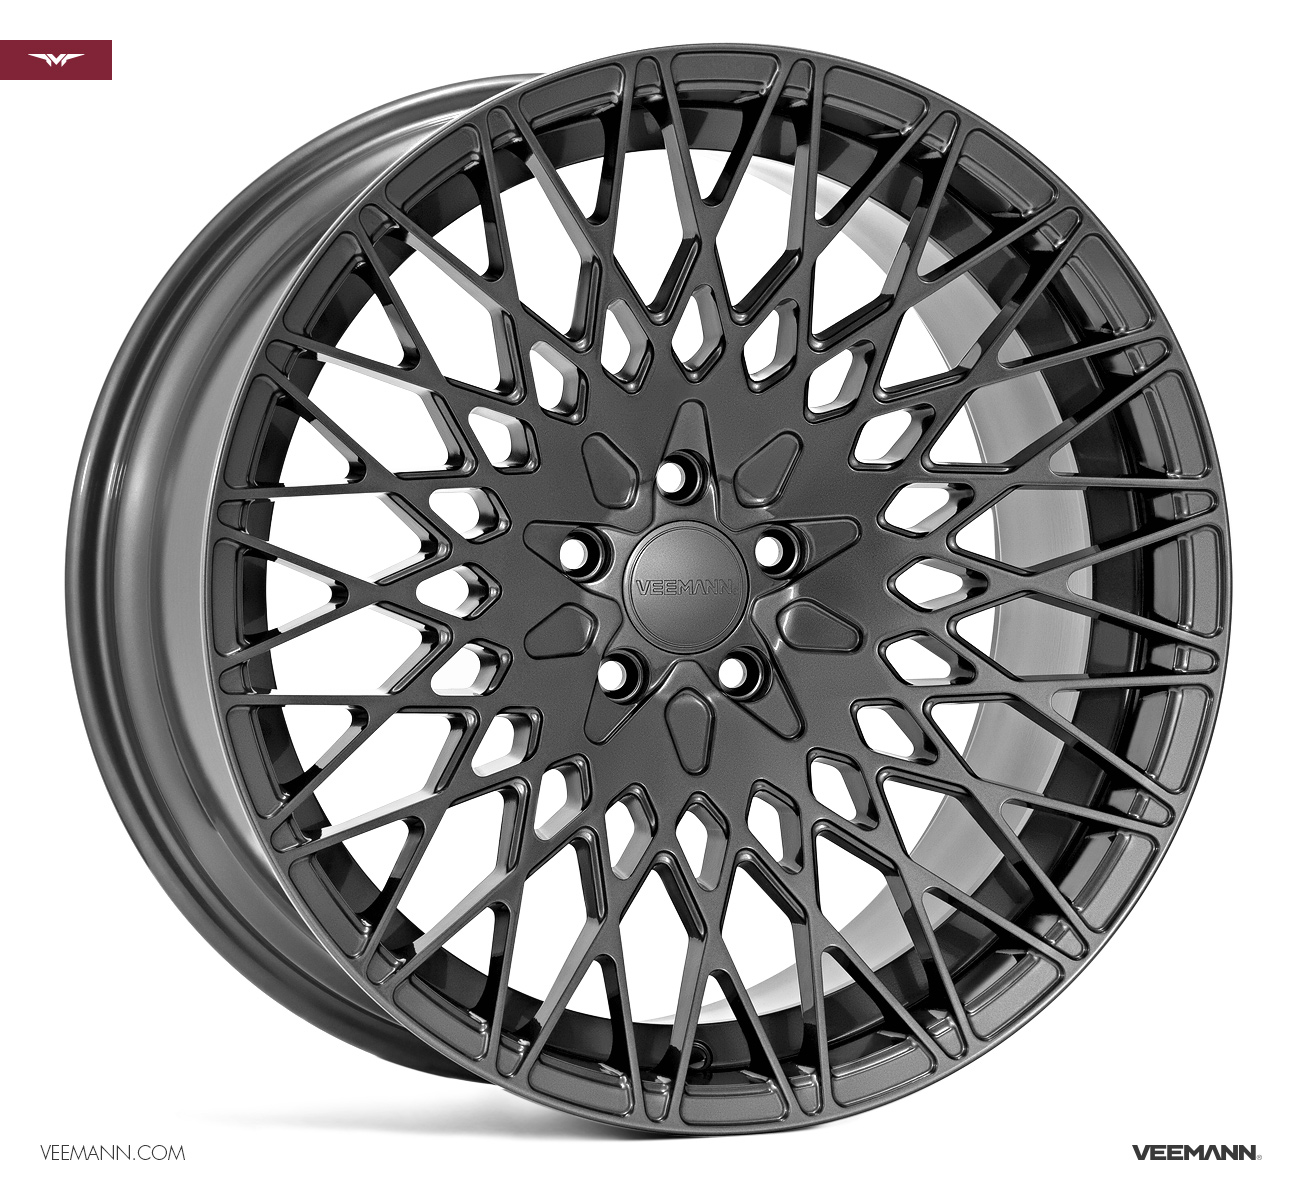 "NEW 19"" VEEMANN VC540 ALLOY WHEELS IN GLOSS GRAPHITE WITH WIDER 9.5"" REARS"